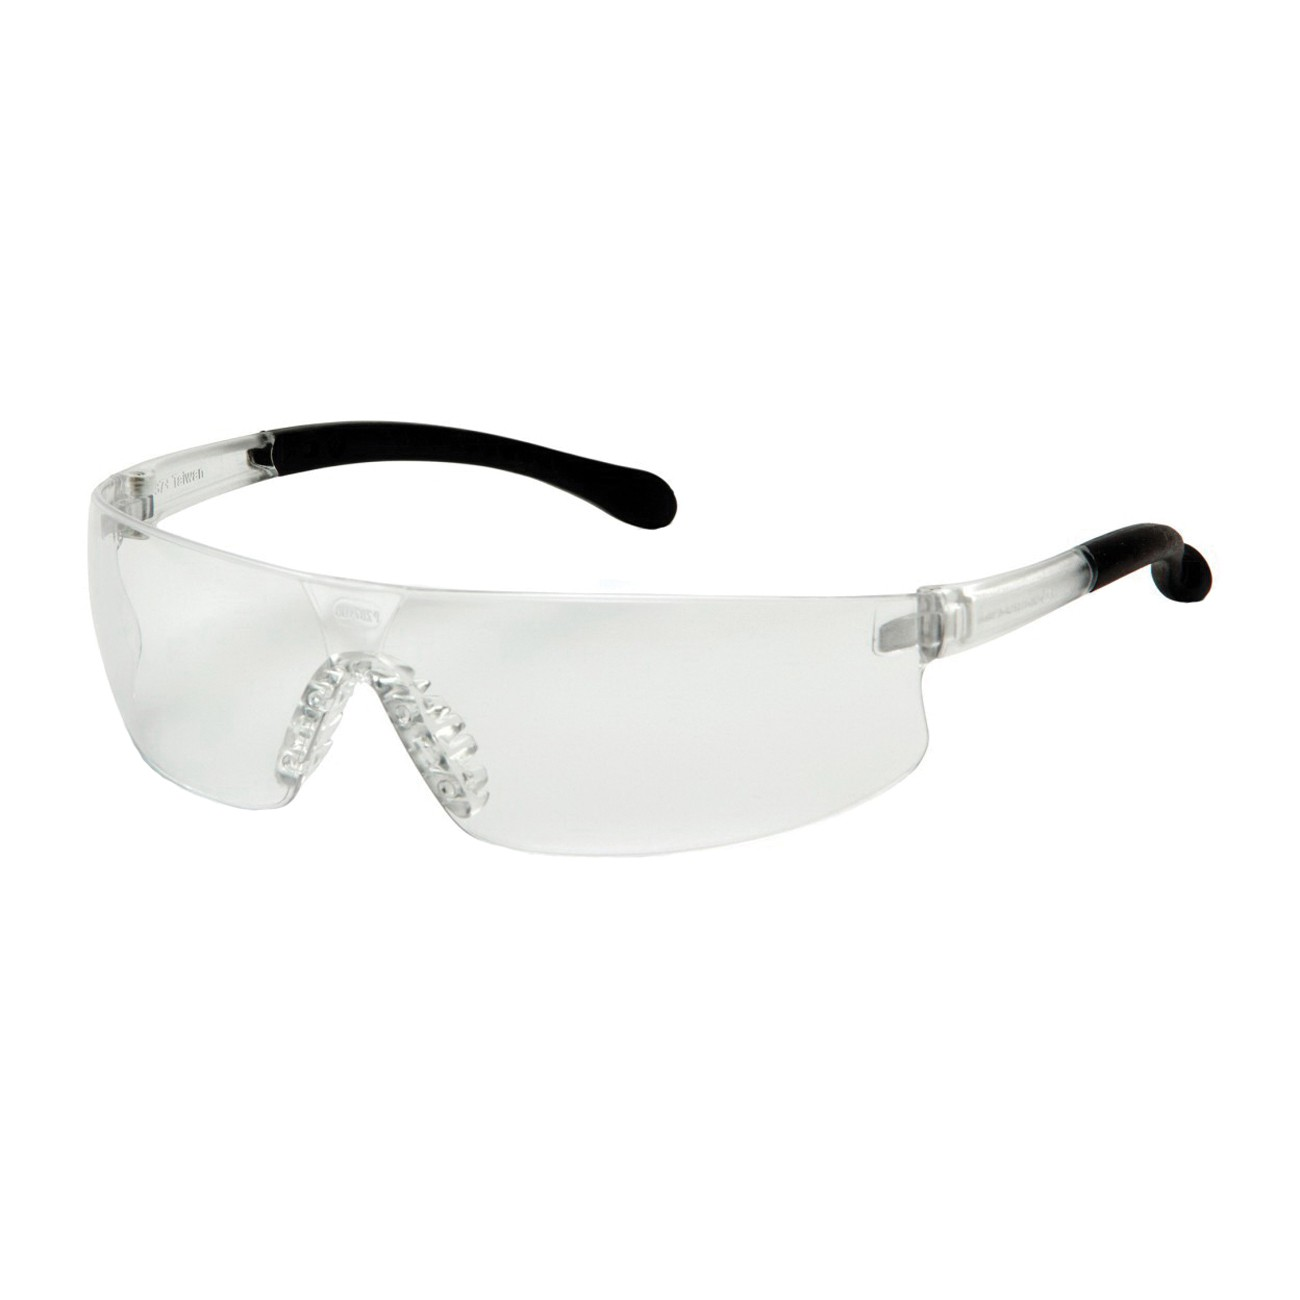 Pyramex® S7210ST Economical, Light Weight Protective Glasses, Universal, Frameless Clear Frame, Anti-Fog Clear Lens